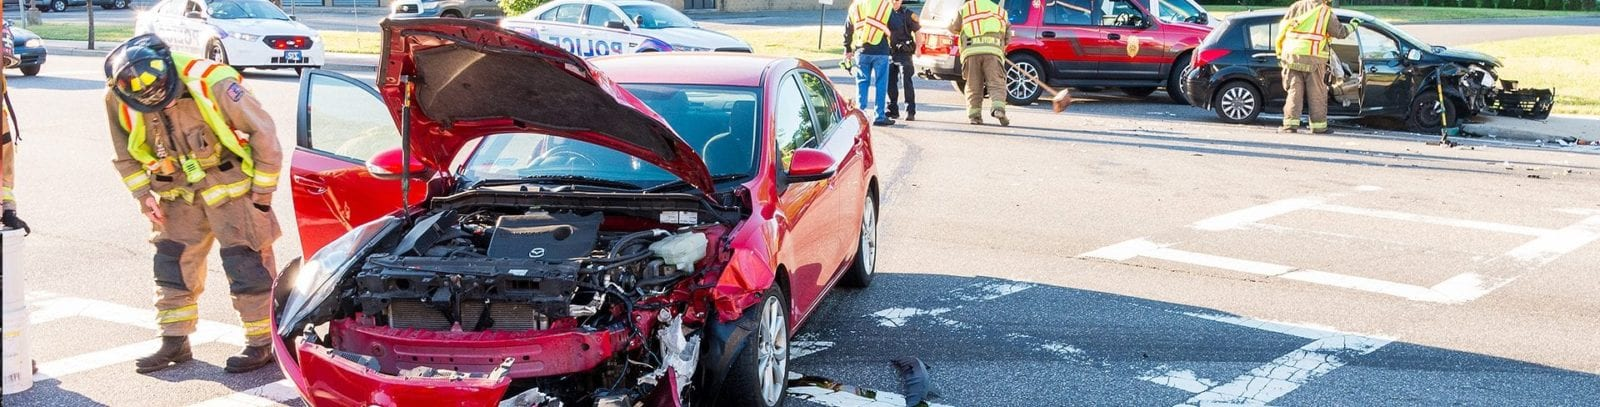 First Responders Addressing Car Accident Stock Photo